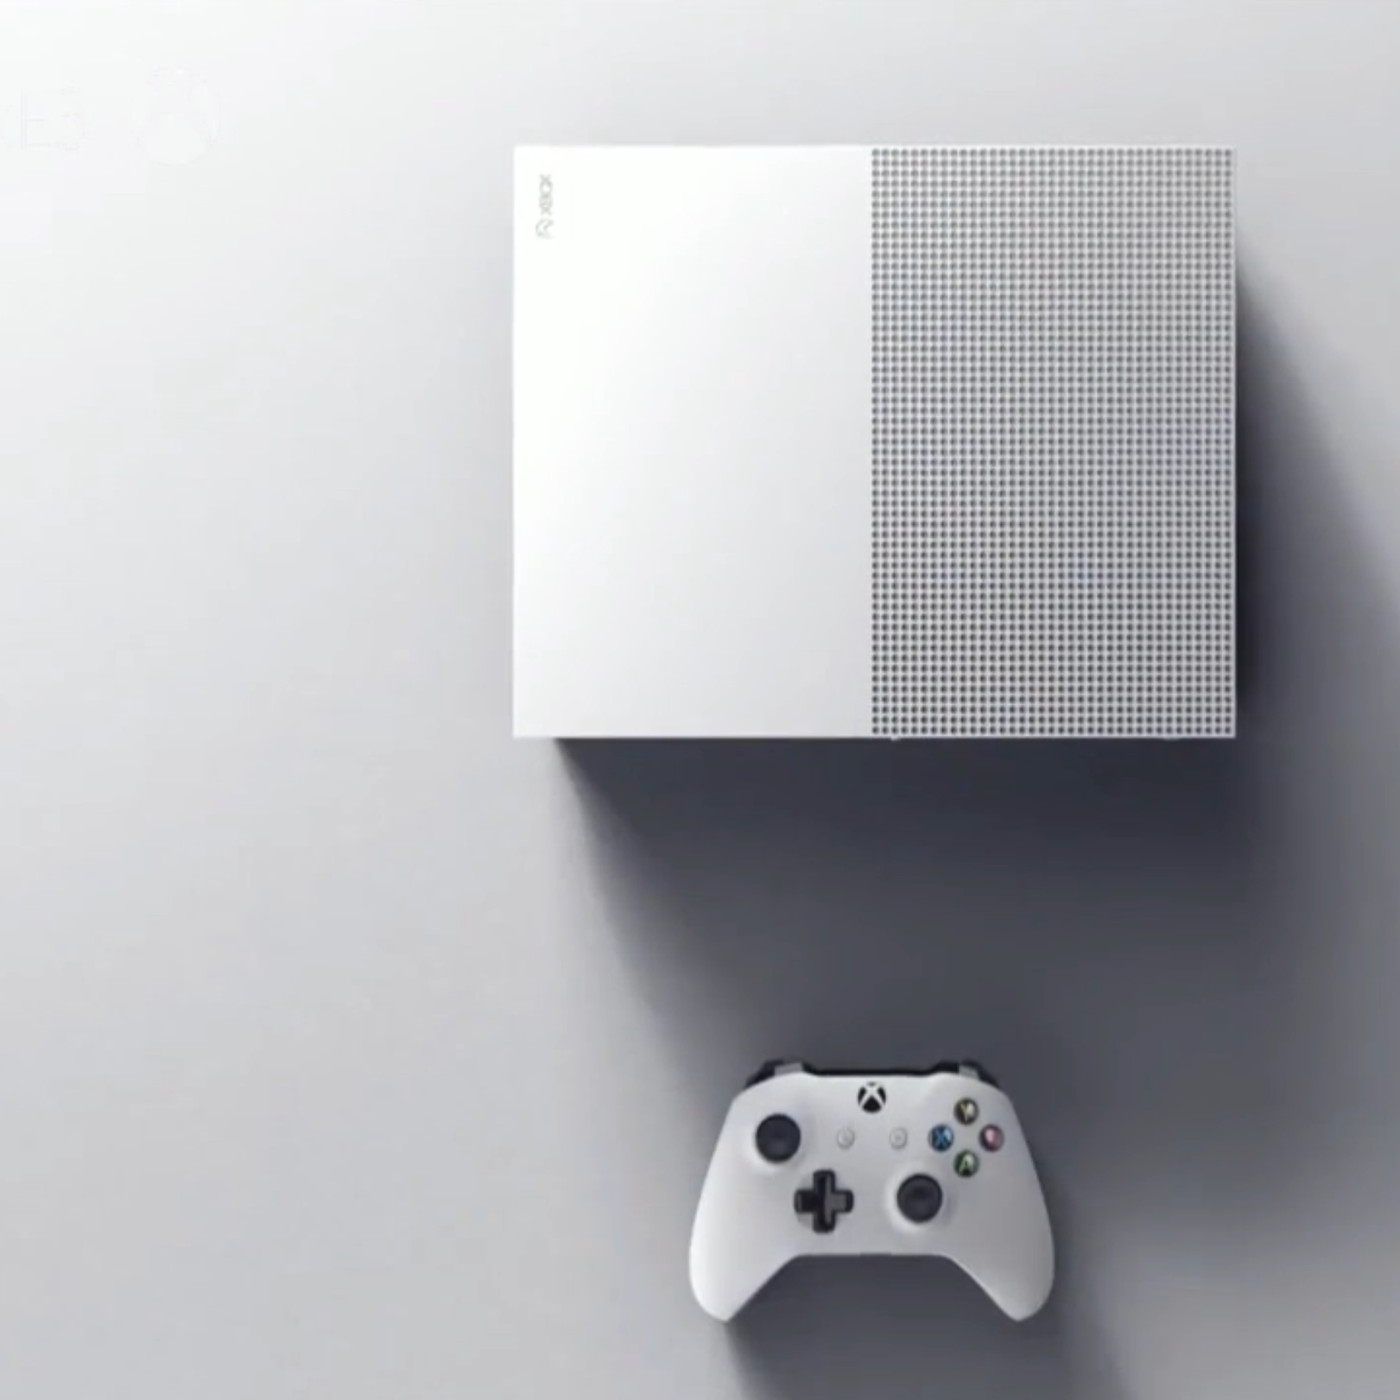 Games can perform better on Xbox One S - Polygon